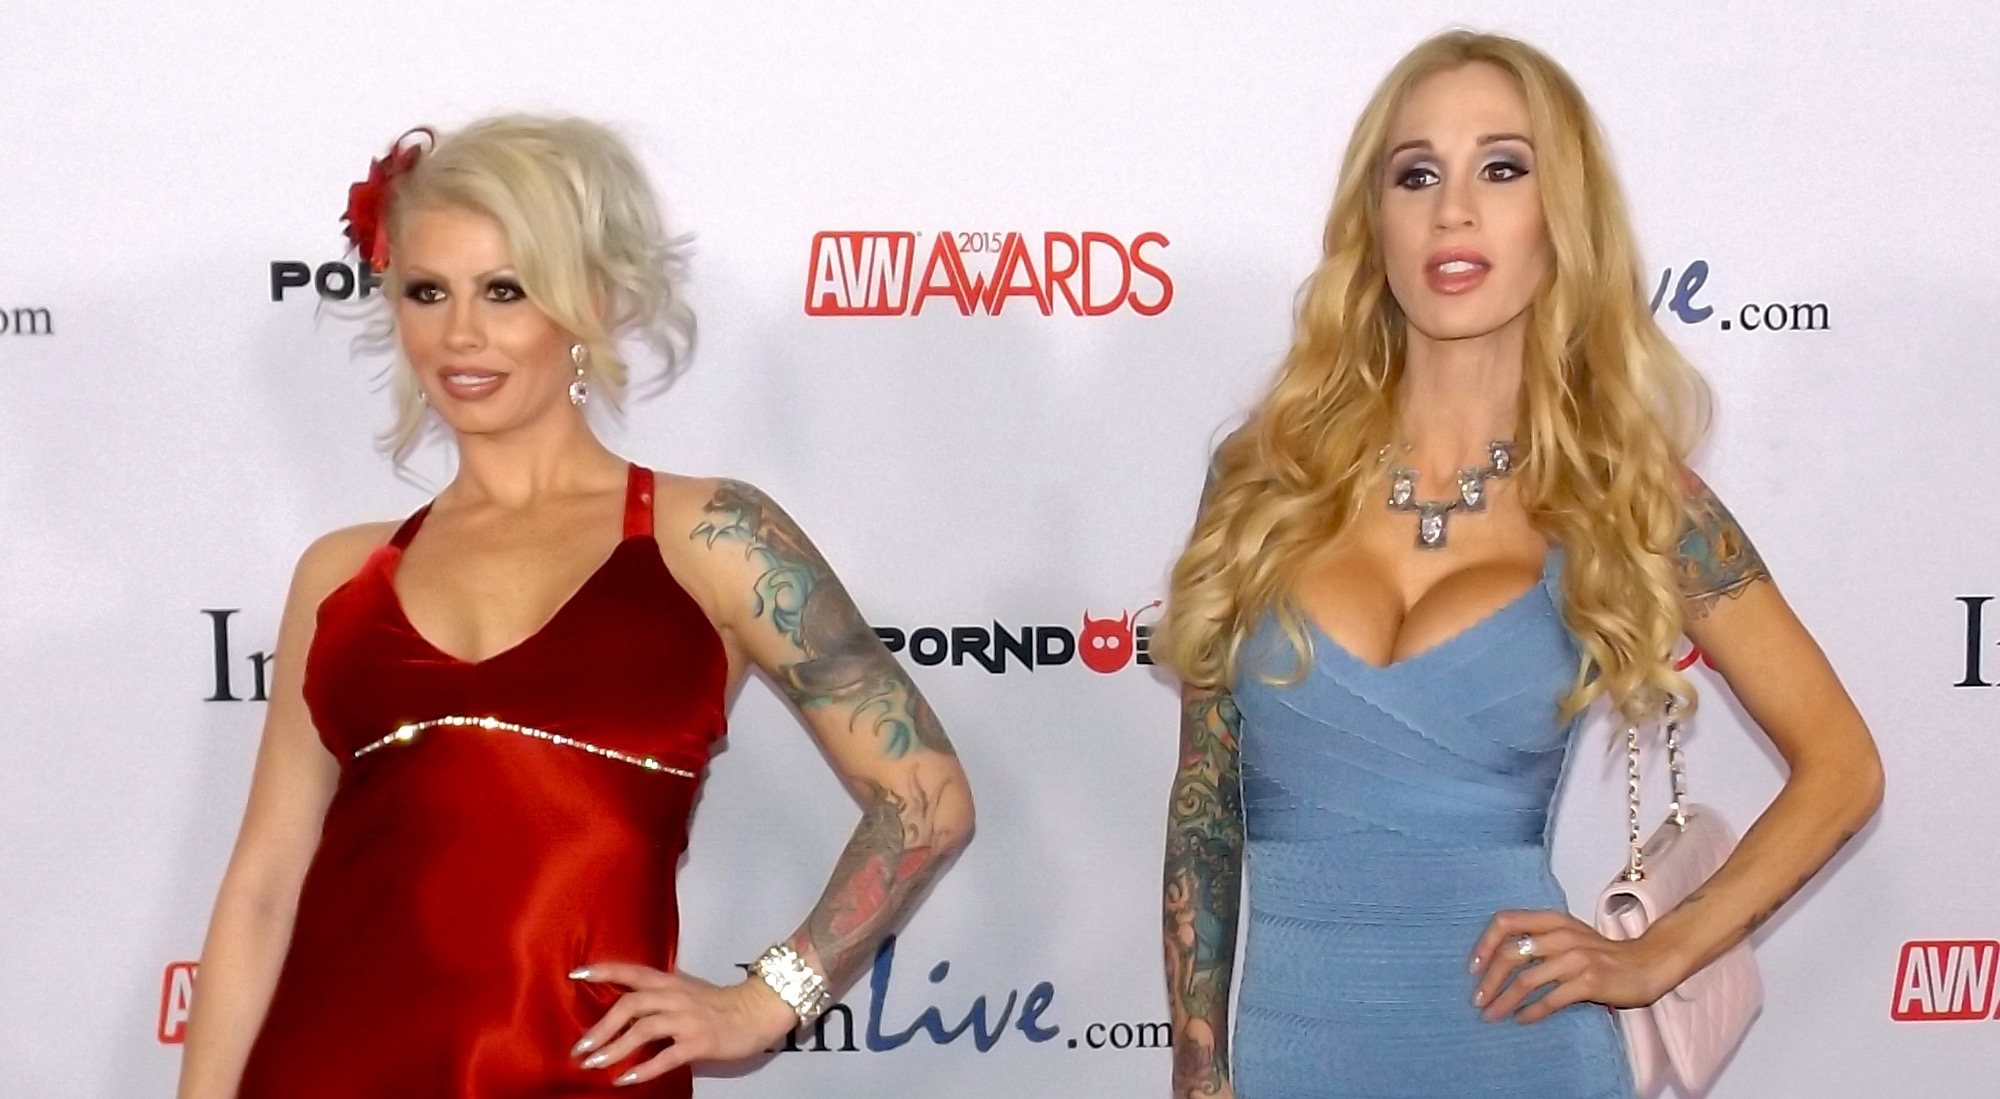 AVN Awards 2015 Red Carpet PHOTOS (Part 8)